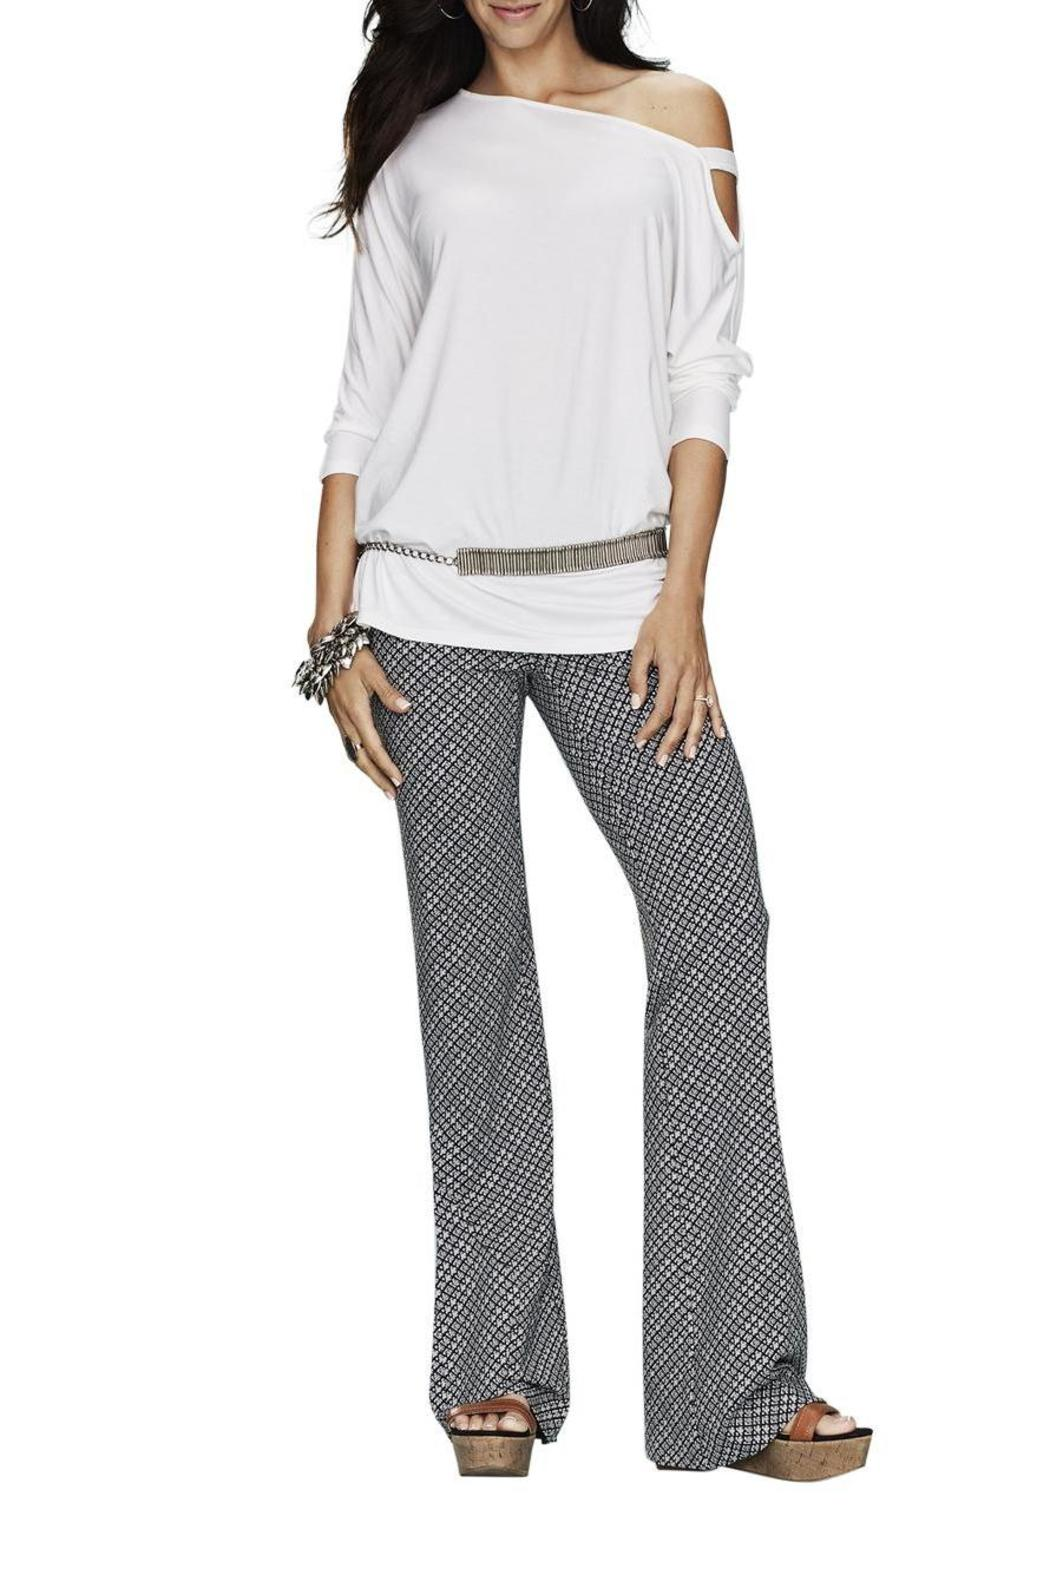 lisette L Printed Palazzo Pant - Front Cropped Image